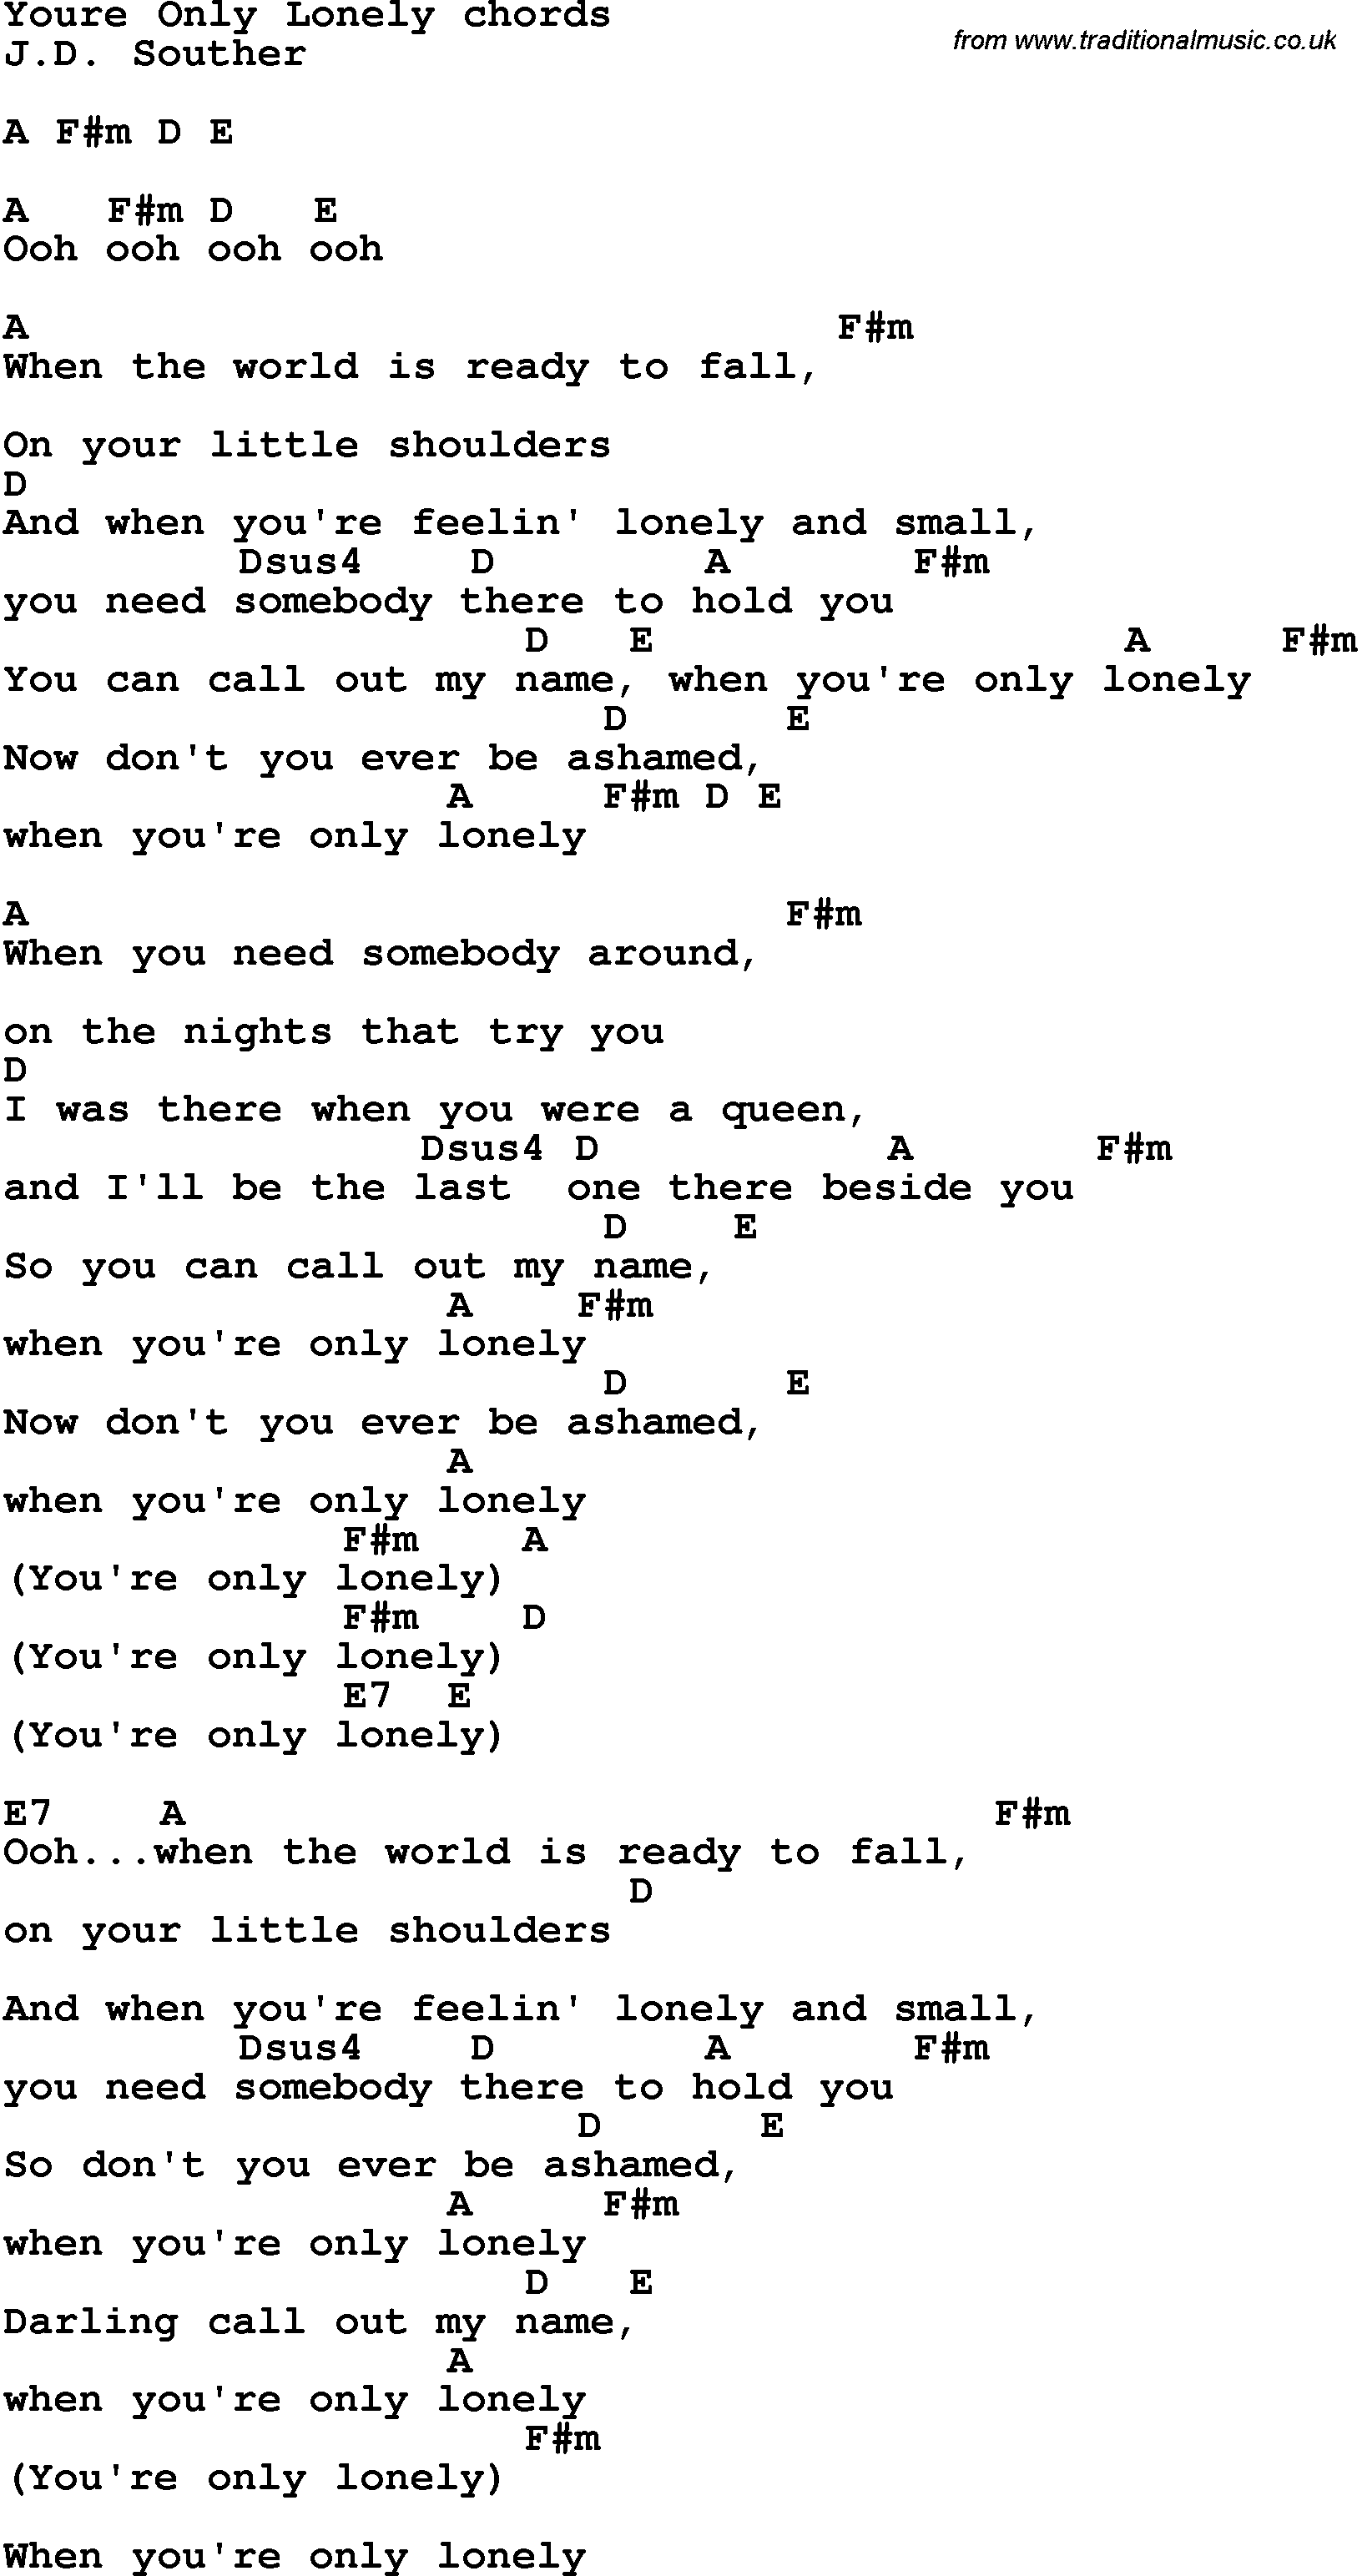 Song Lyrics With Guitar Chords For Youre Only Lonely